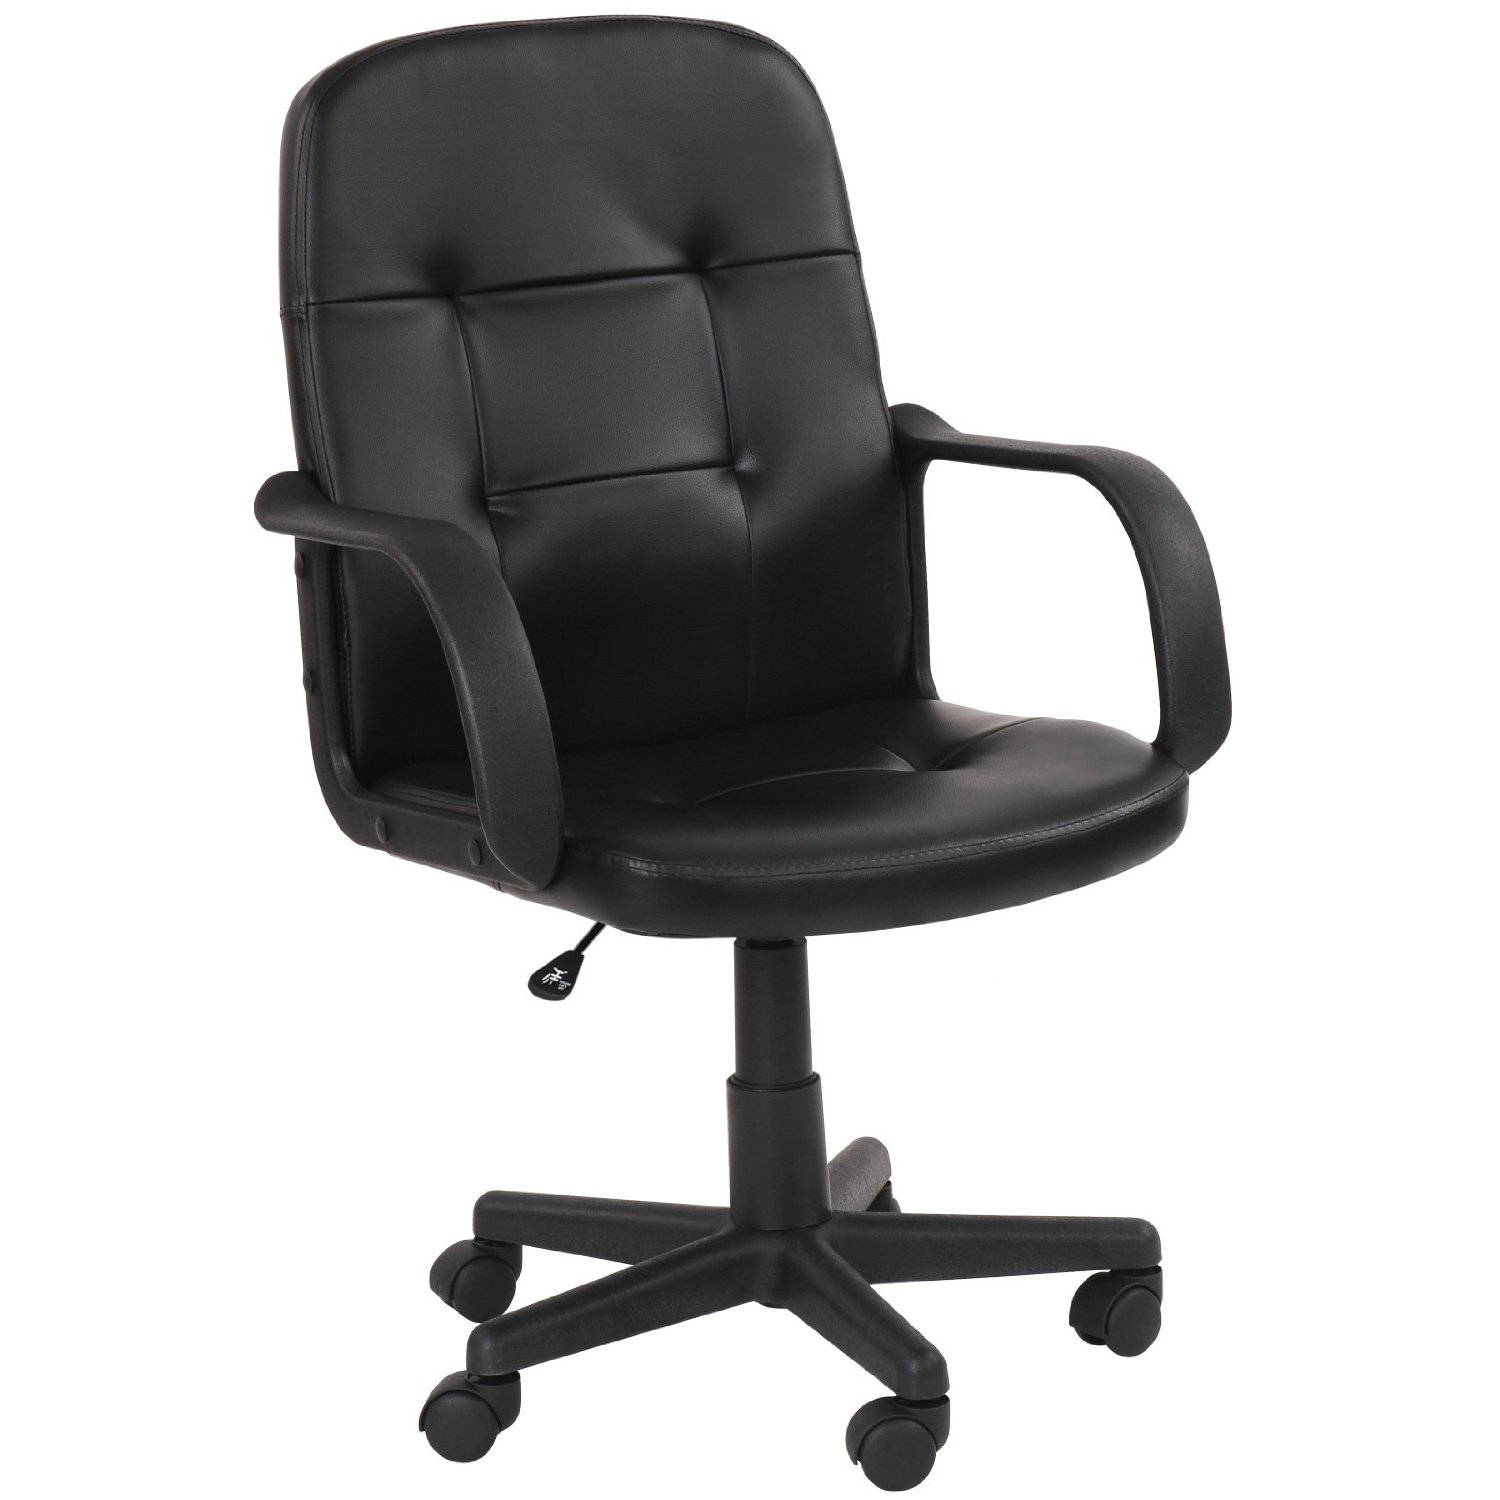 office chair ratings 2016 fishing for dock miadomodo swivel black ergonomic height